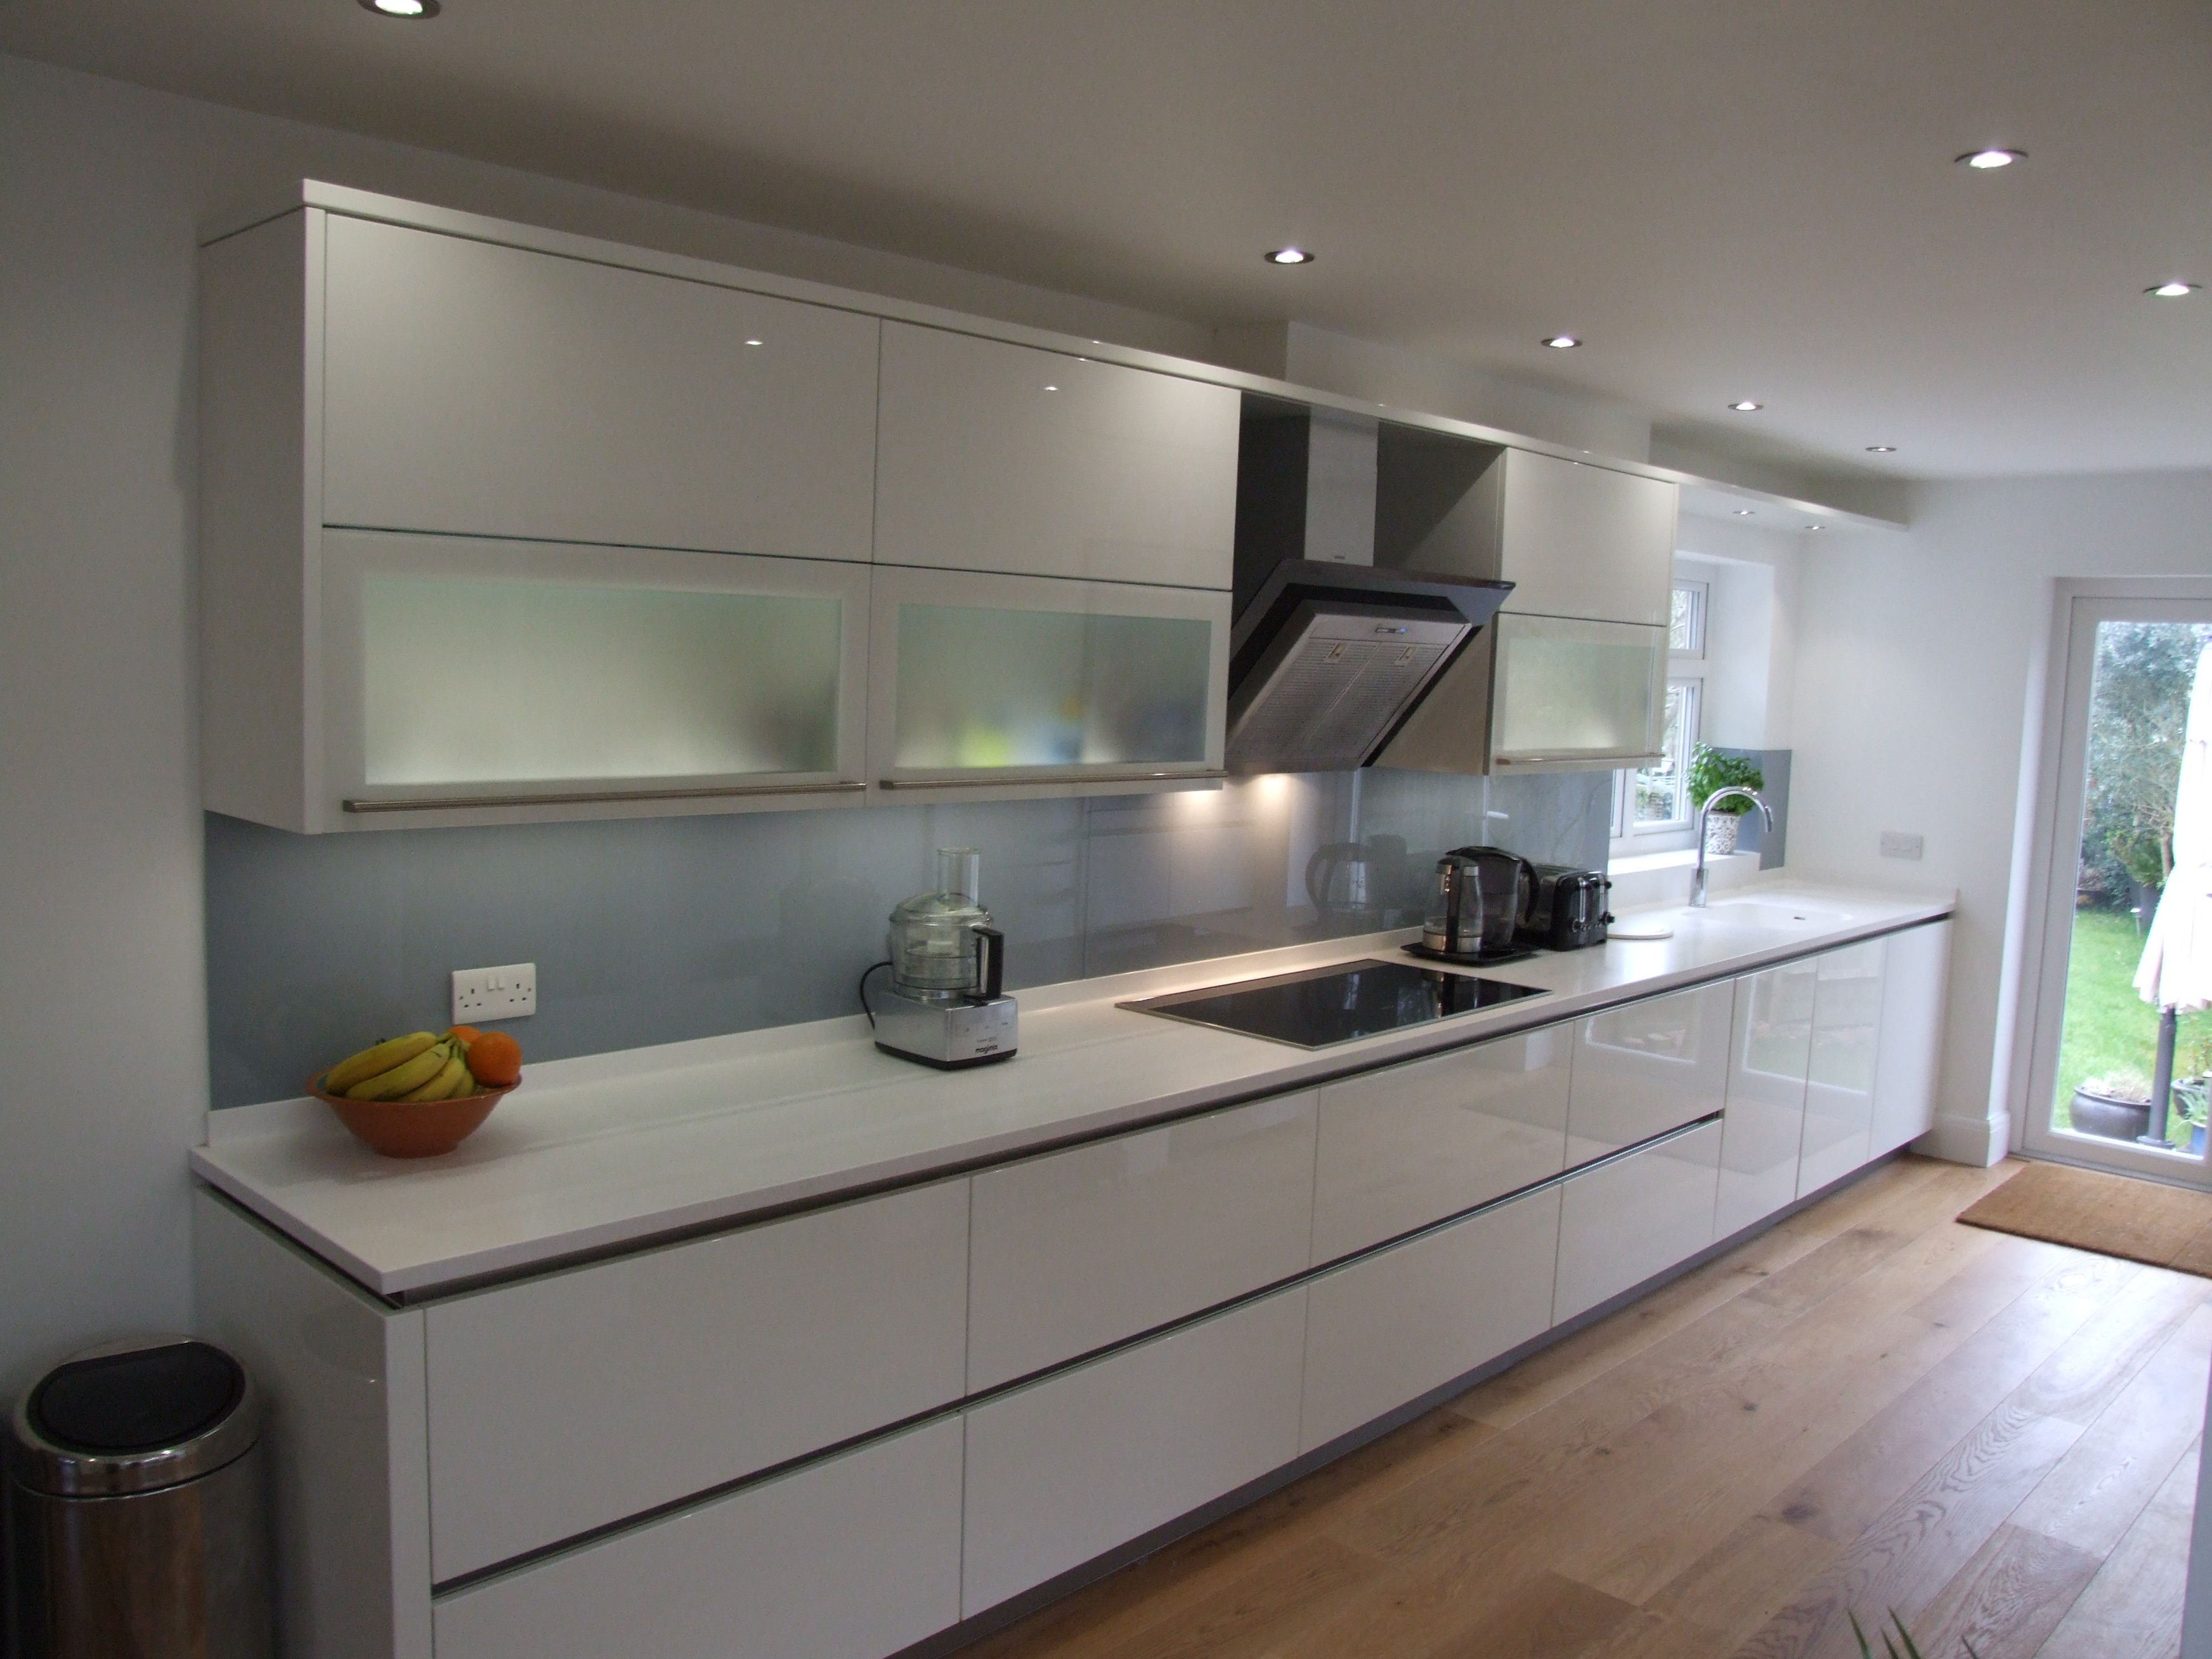 A French Grey Glass Splashback Is A Great Addition To An All White